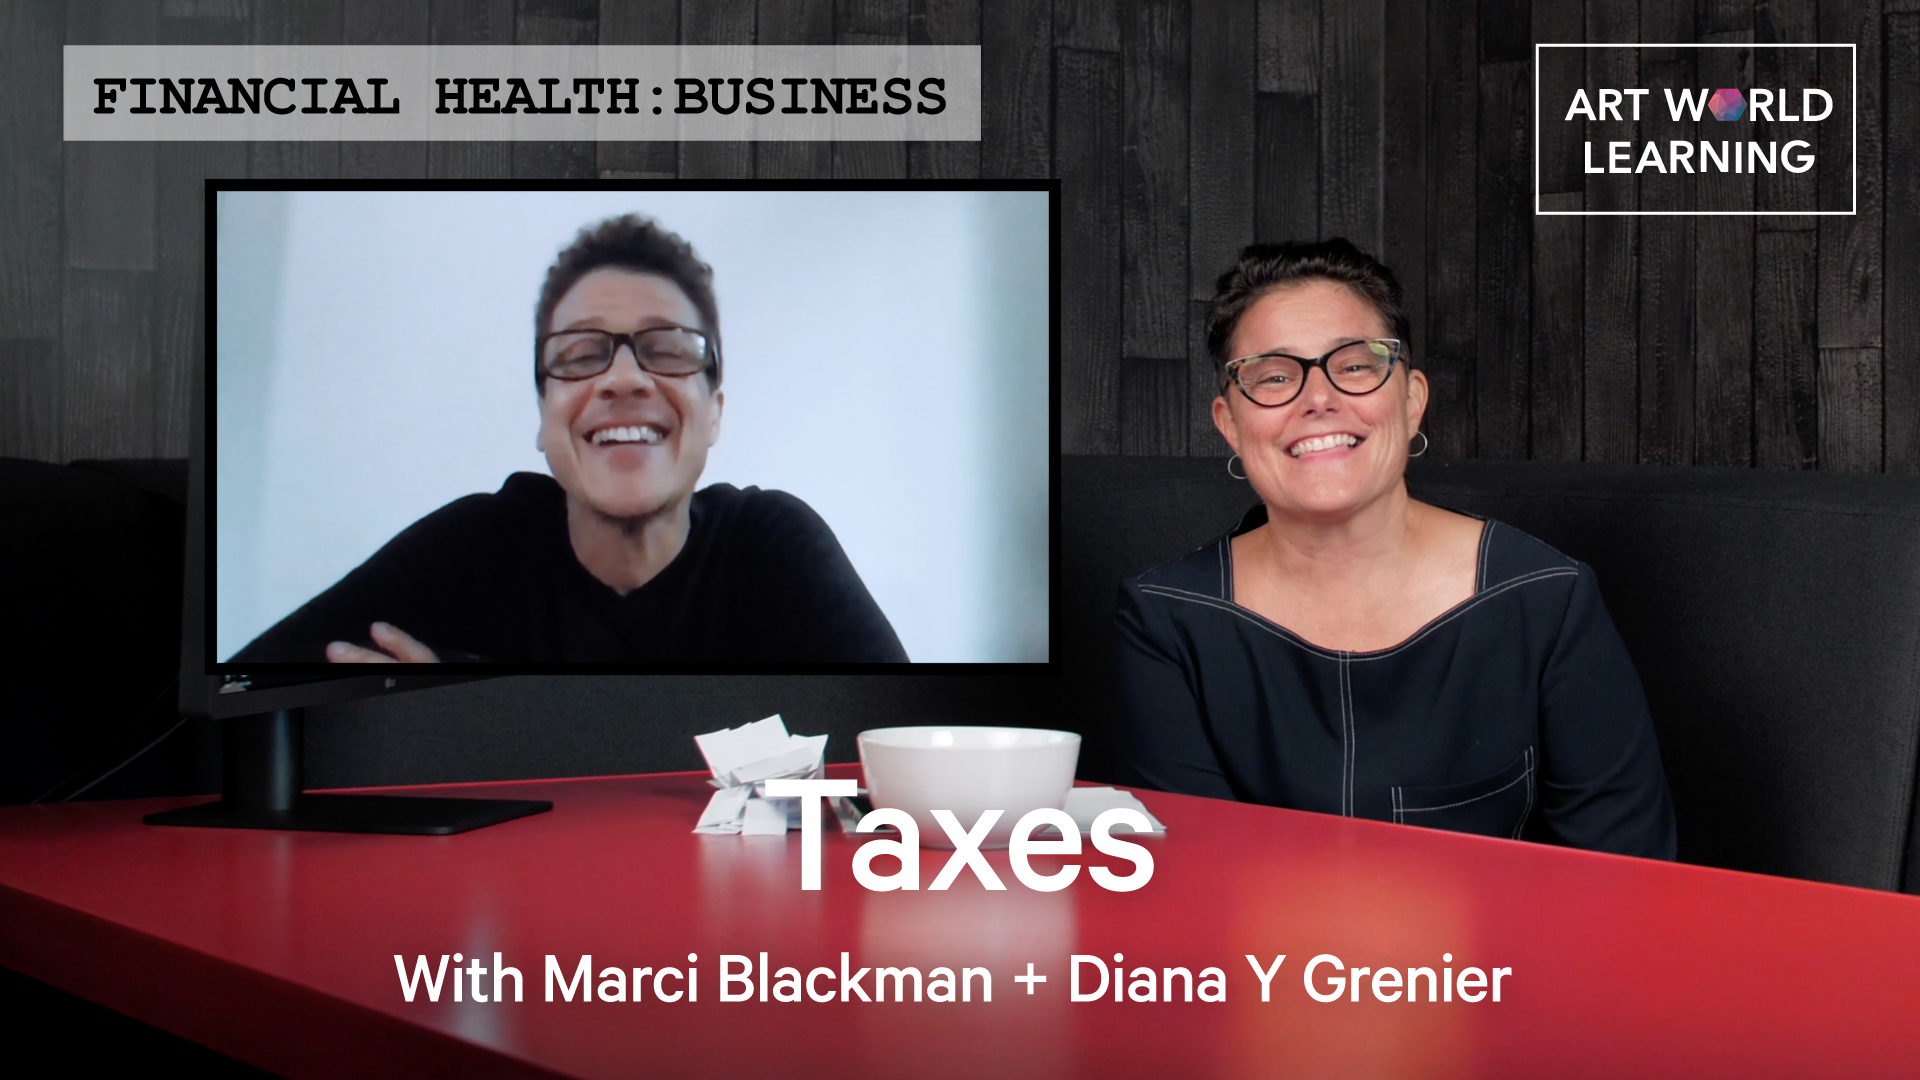 Words Financial Health: Business, Taxes With Marci Blackman and Diana Y Greiner over a picture of Marci on a computer screen and Diana sitting in a brown booth with a red table in front of her. On the table is that computer screen and a white bowl, full of slips of white paper.